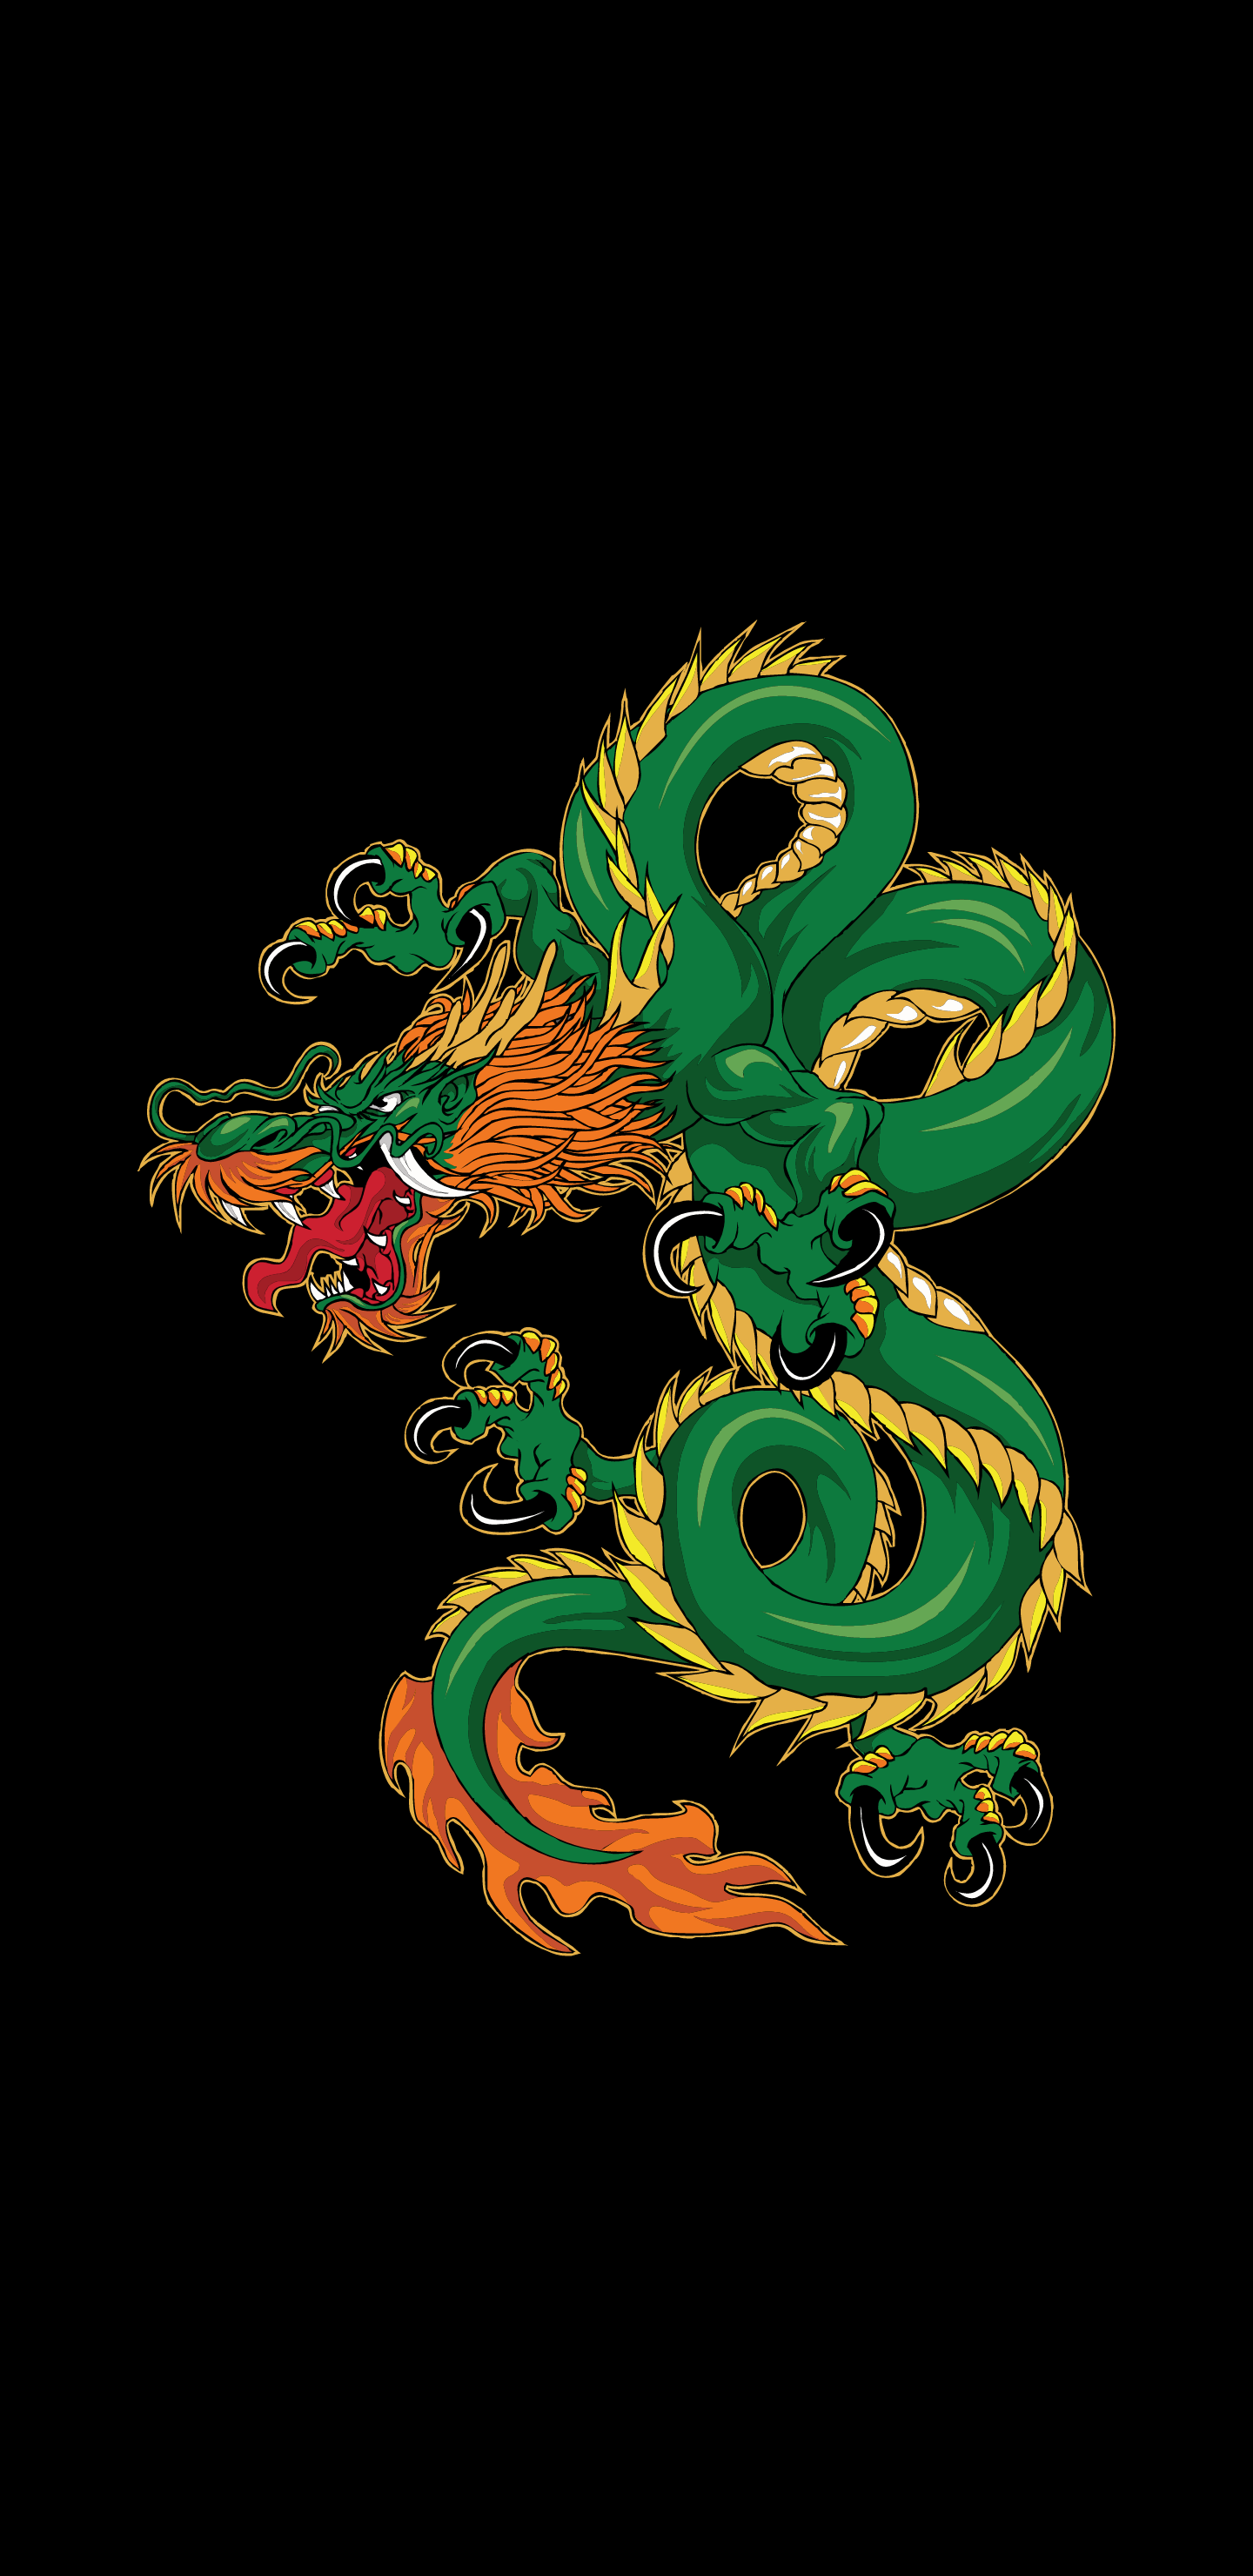 """Dragon [1440x2960] wallpaper generated by Colartive (an android wallpaper generator app). Another day, another elegant looking wallpaper. Try your own choice of colors on template """"Dragon"""". Drive link in the comments for more pallets applied on same template."""